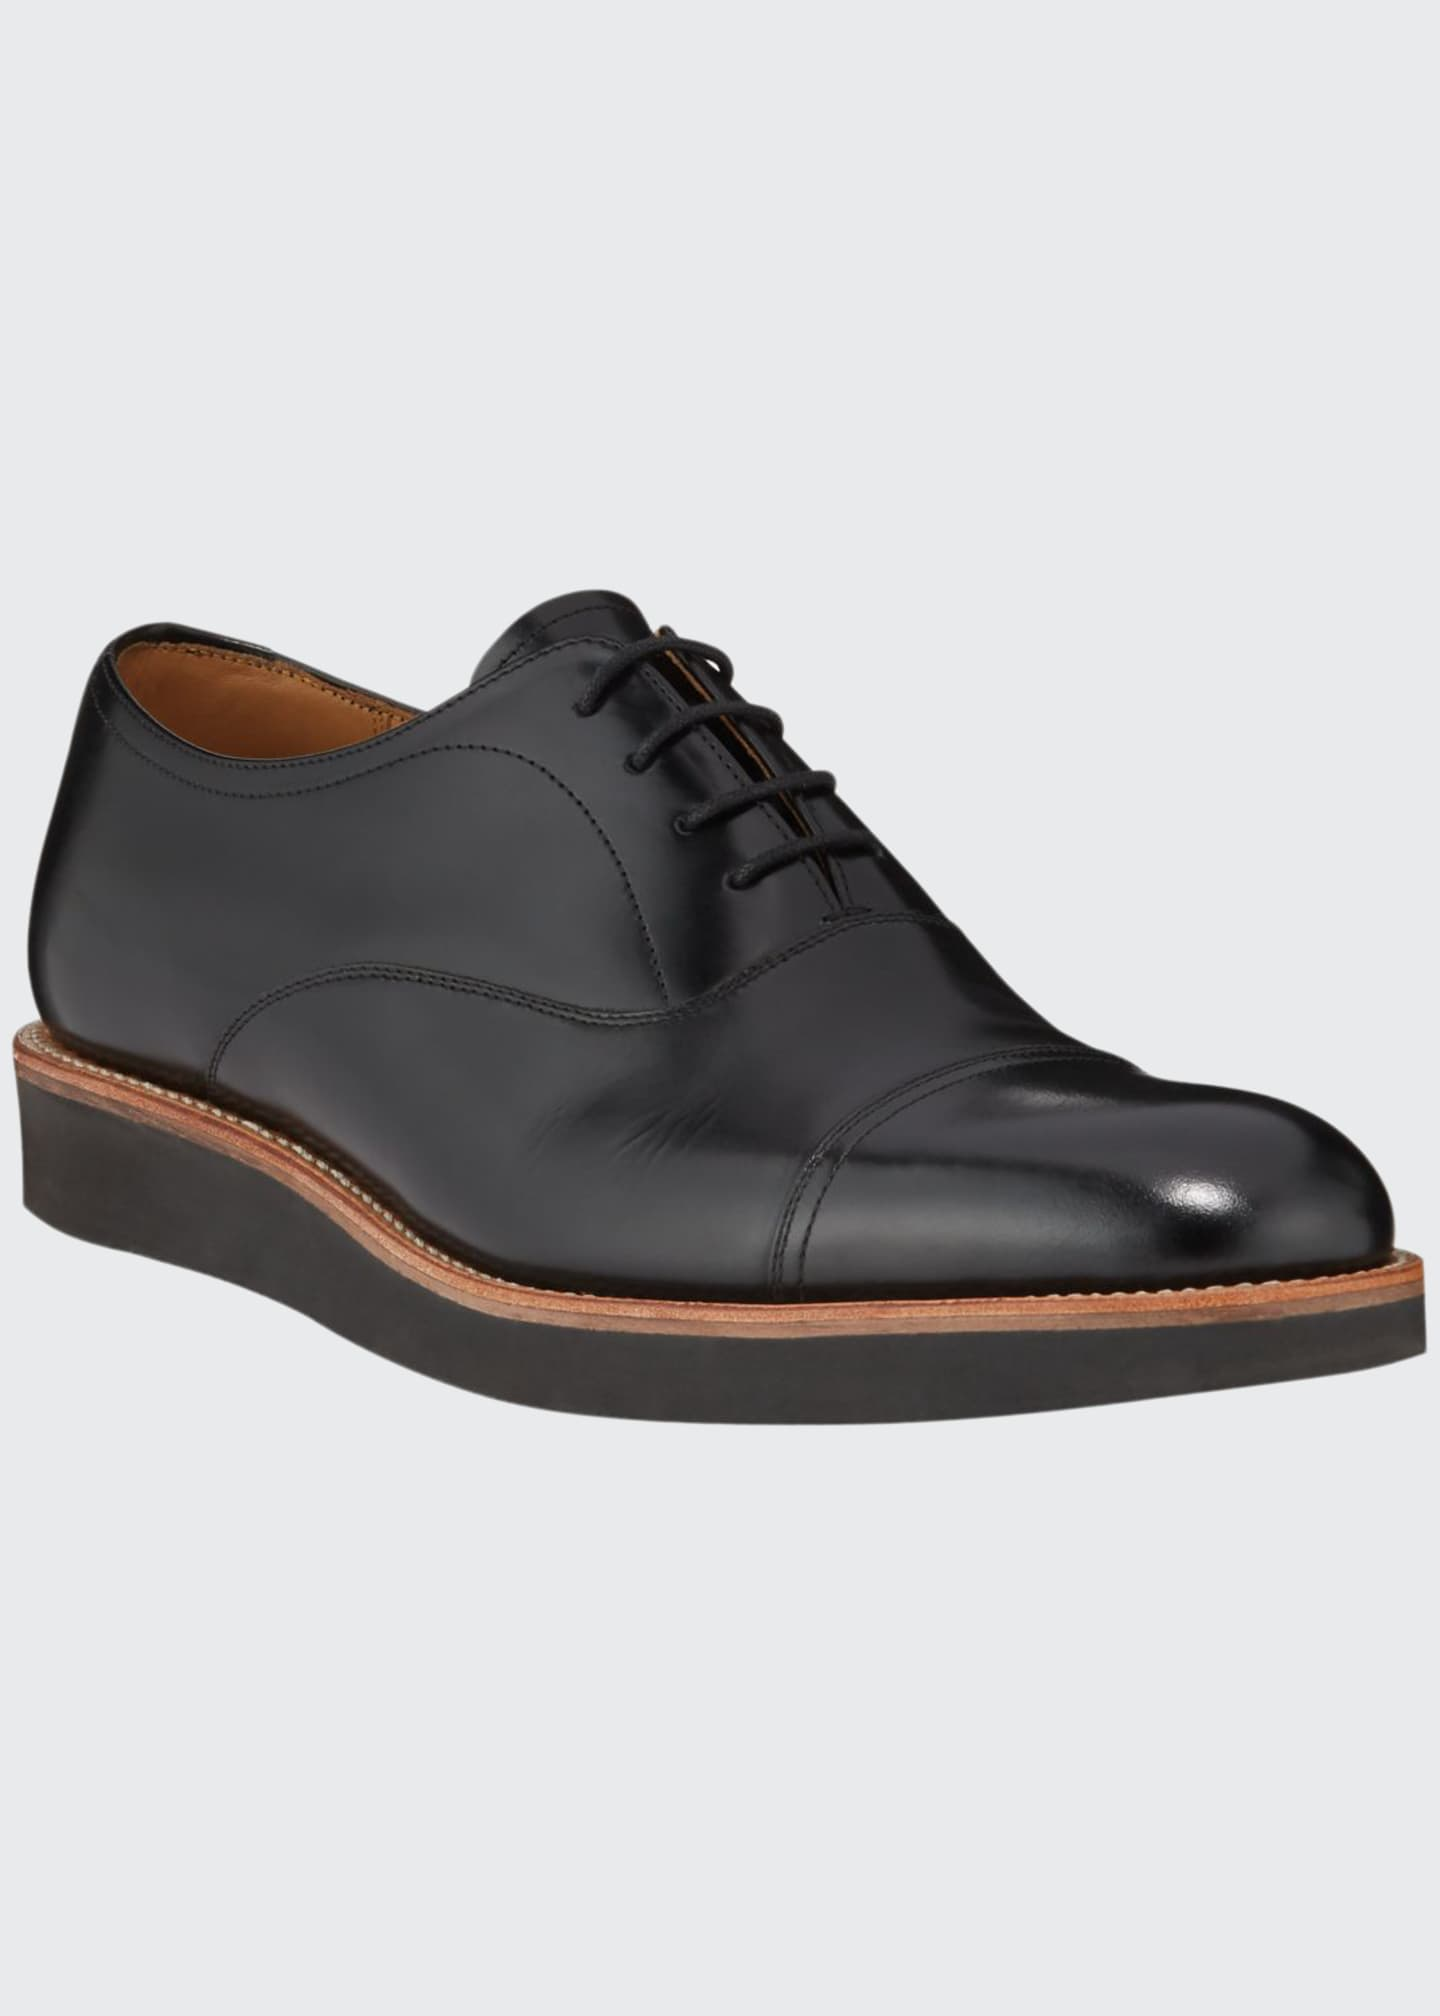 Image 1 of 3: Men's Elliot Leather Oxford Shoes